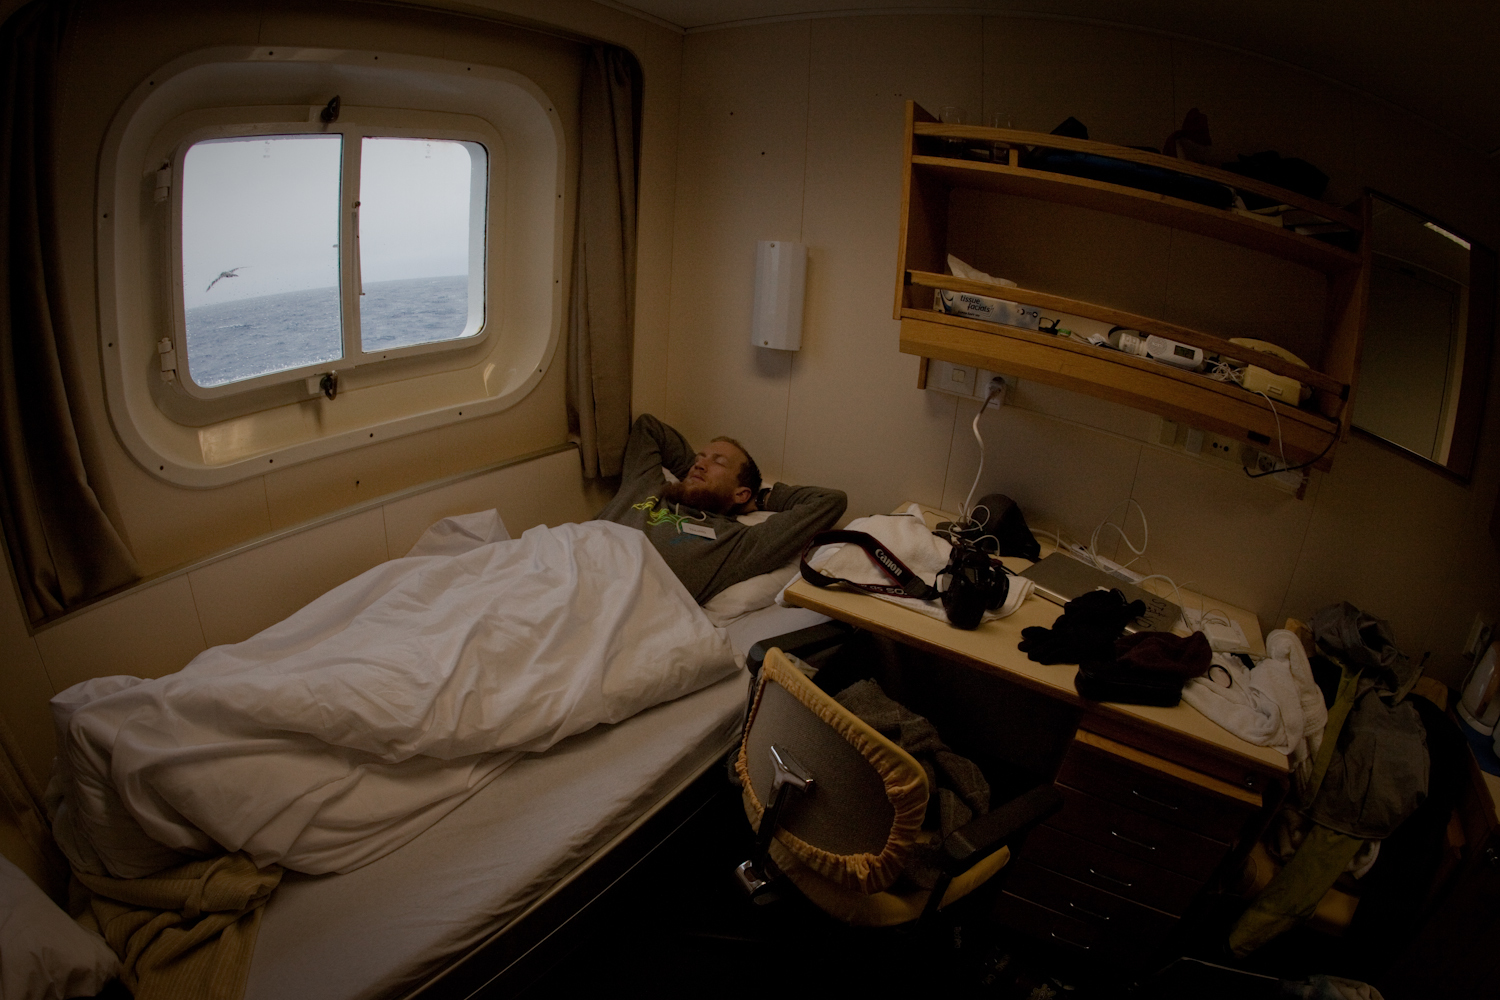 Nic in bed as an albatross soars by our window on the Drake Passage.